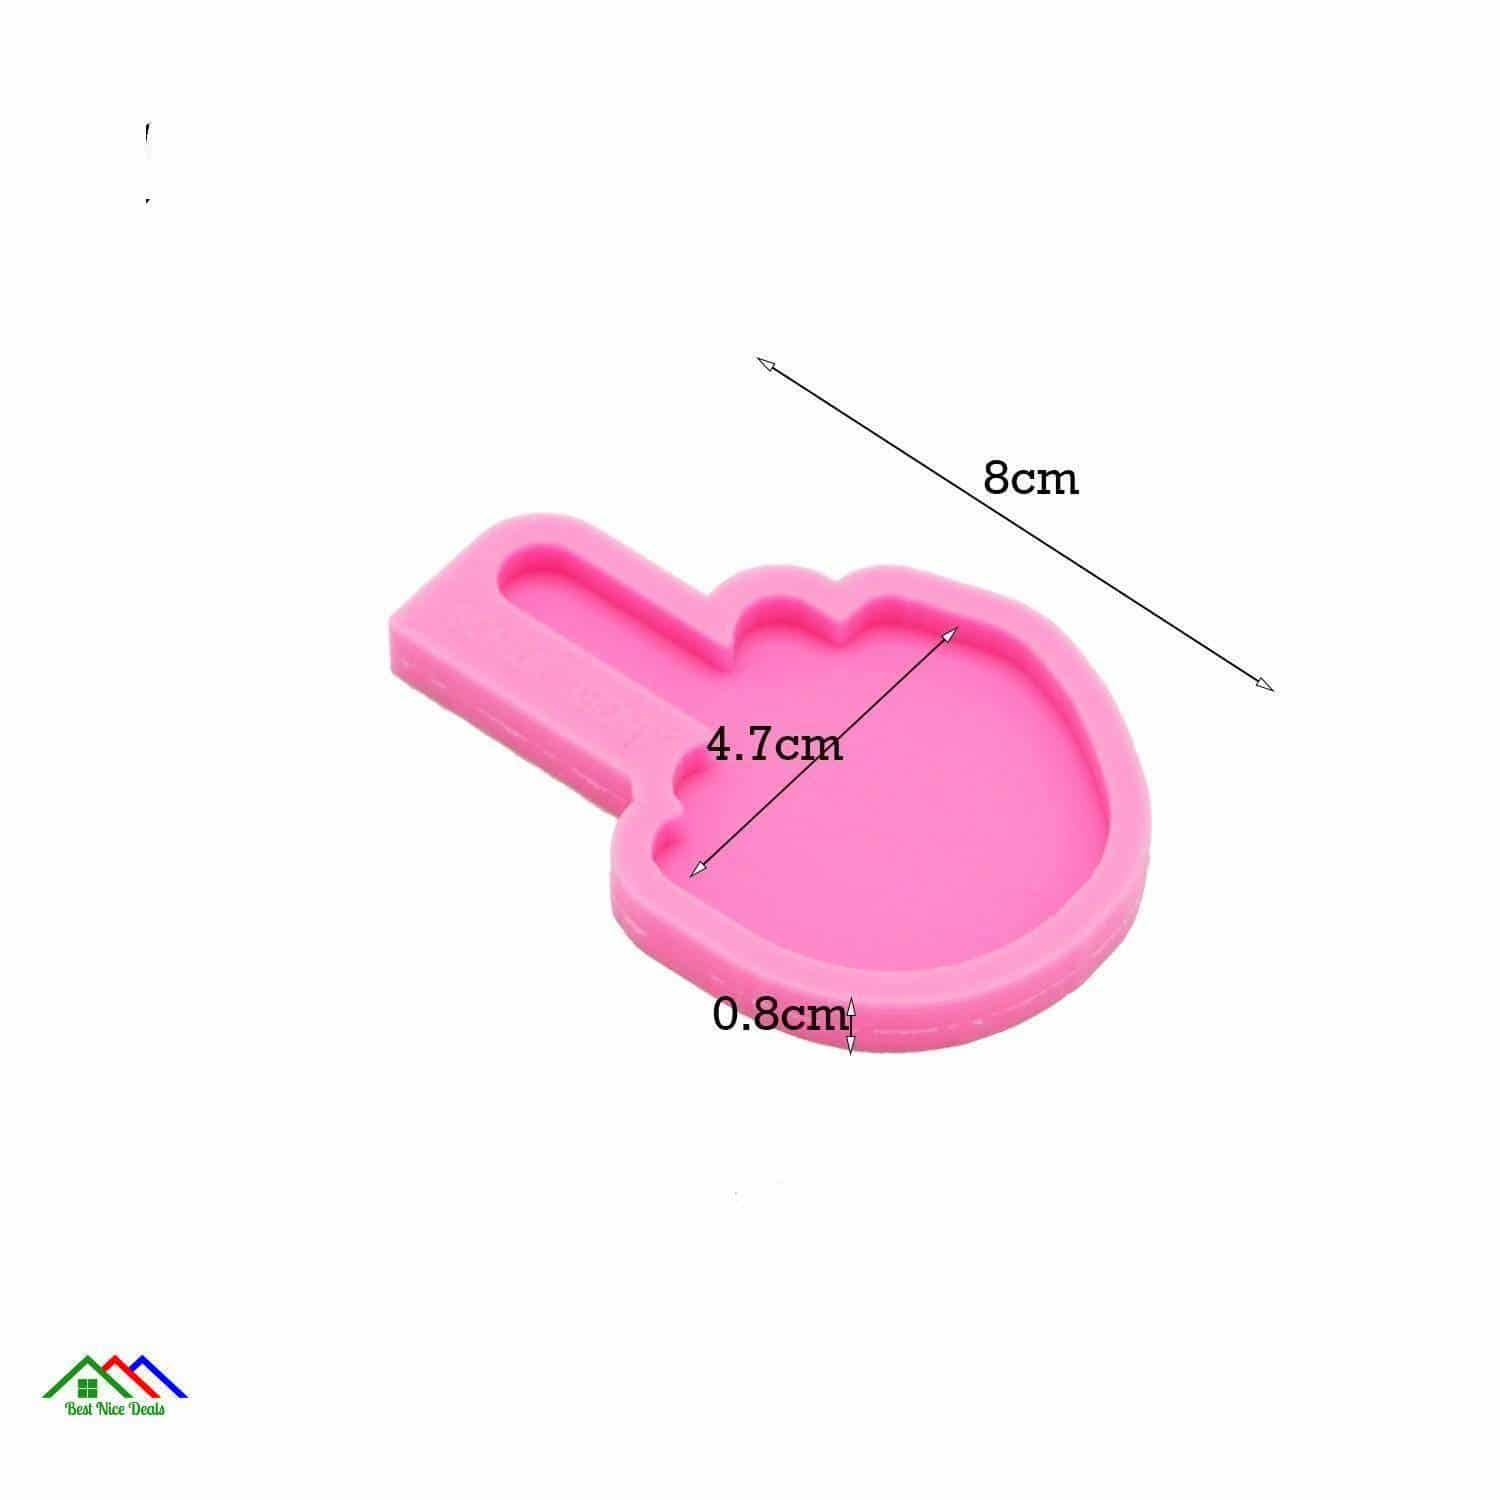 Middle Finger Silicone Keychain Kitchen Silicone Molds